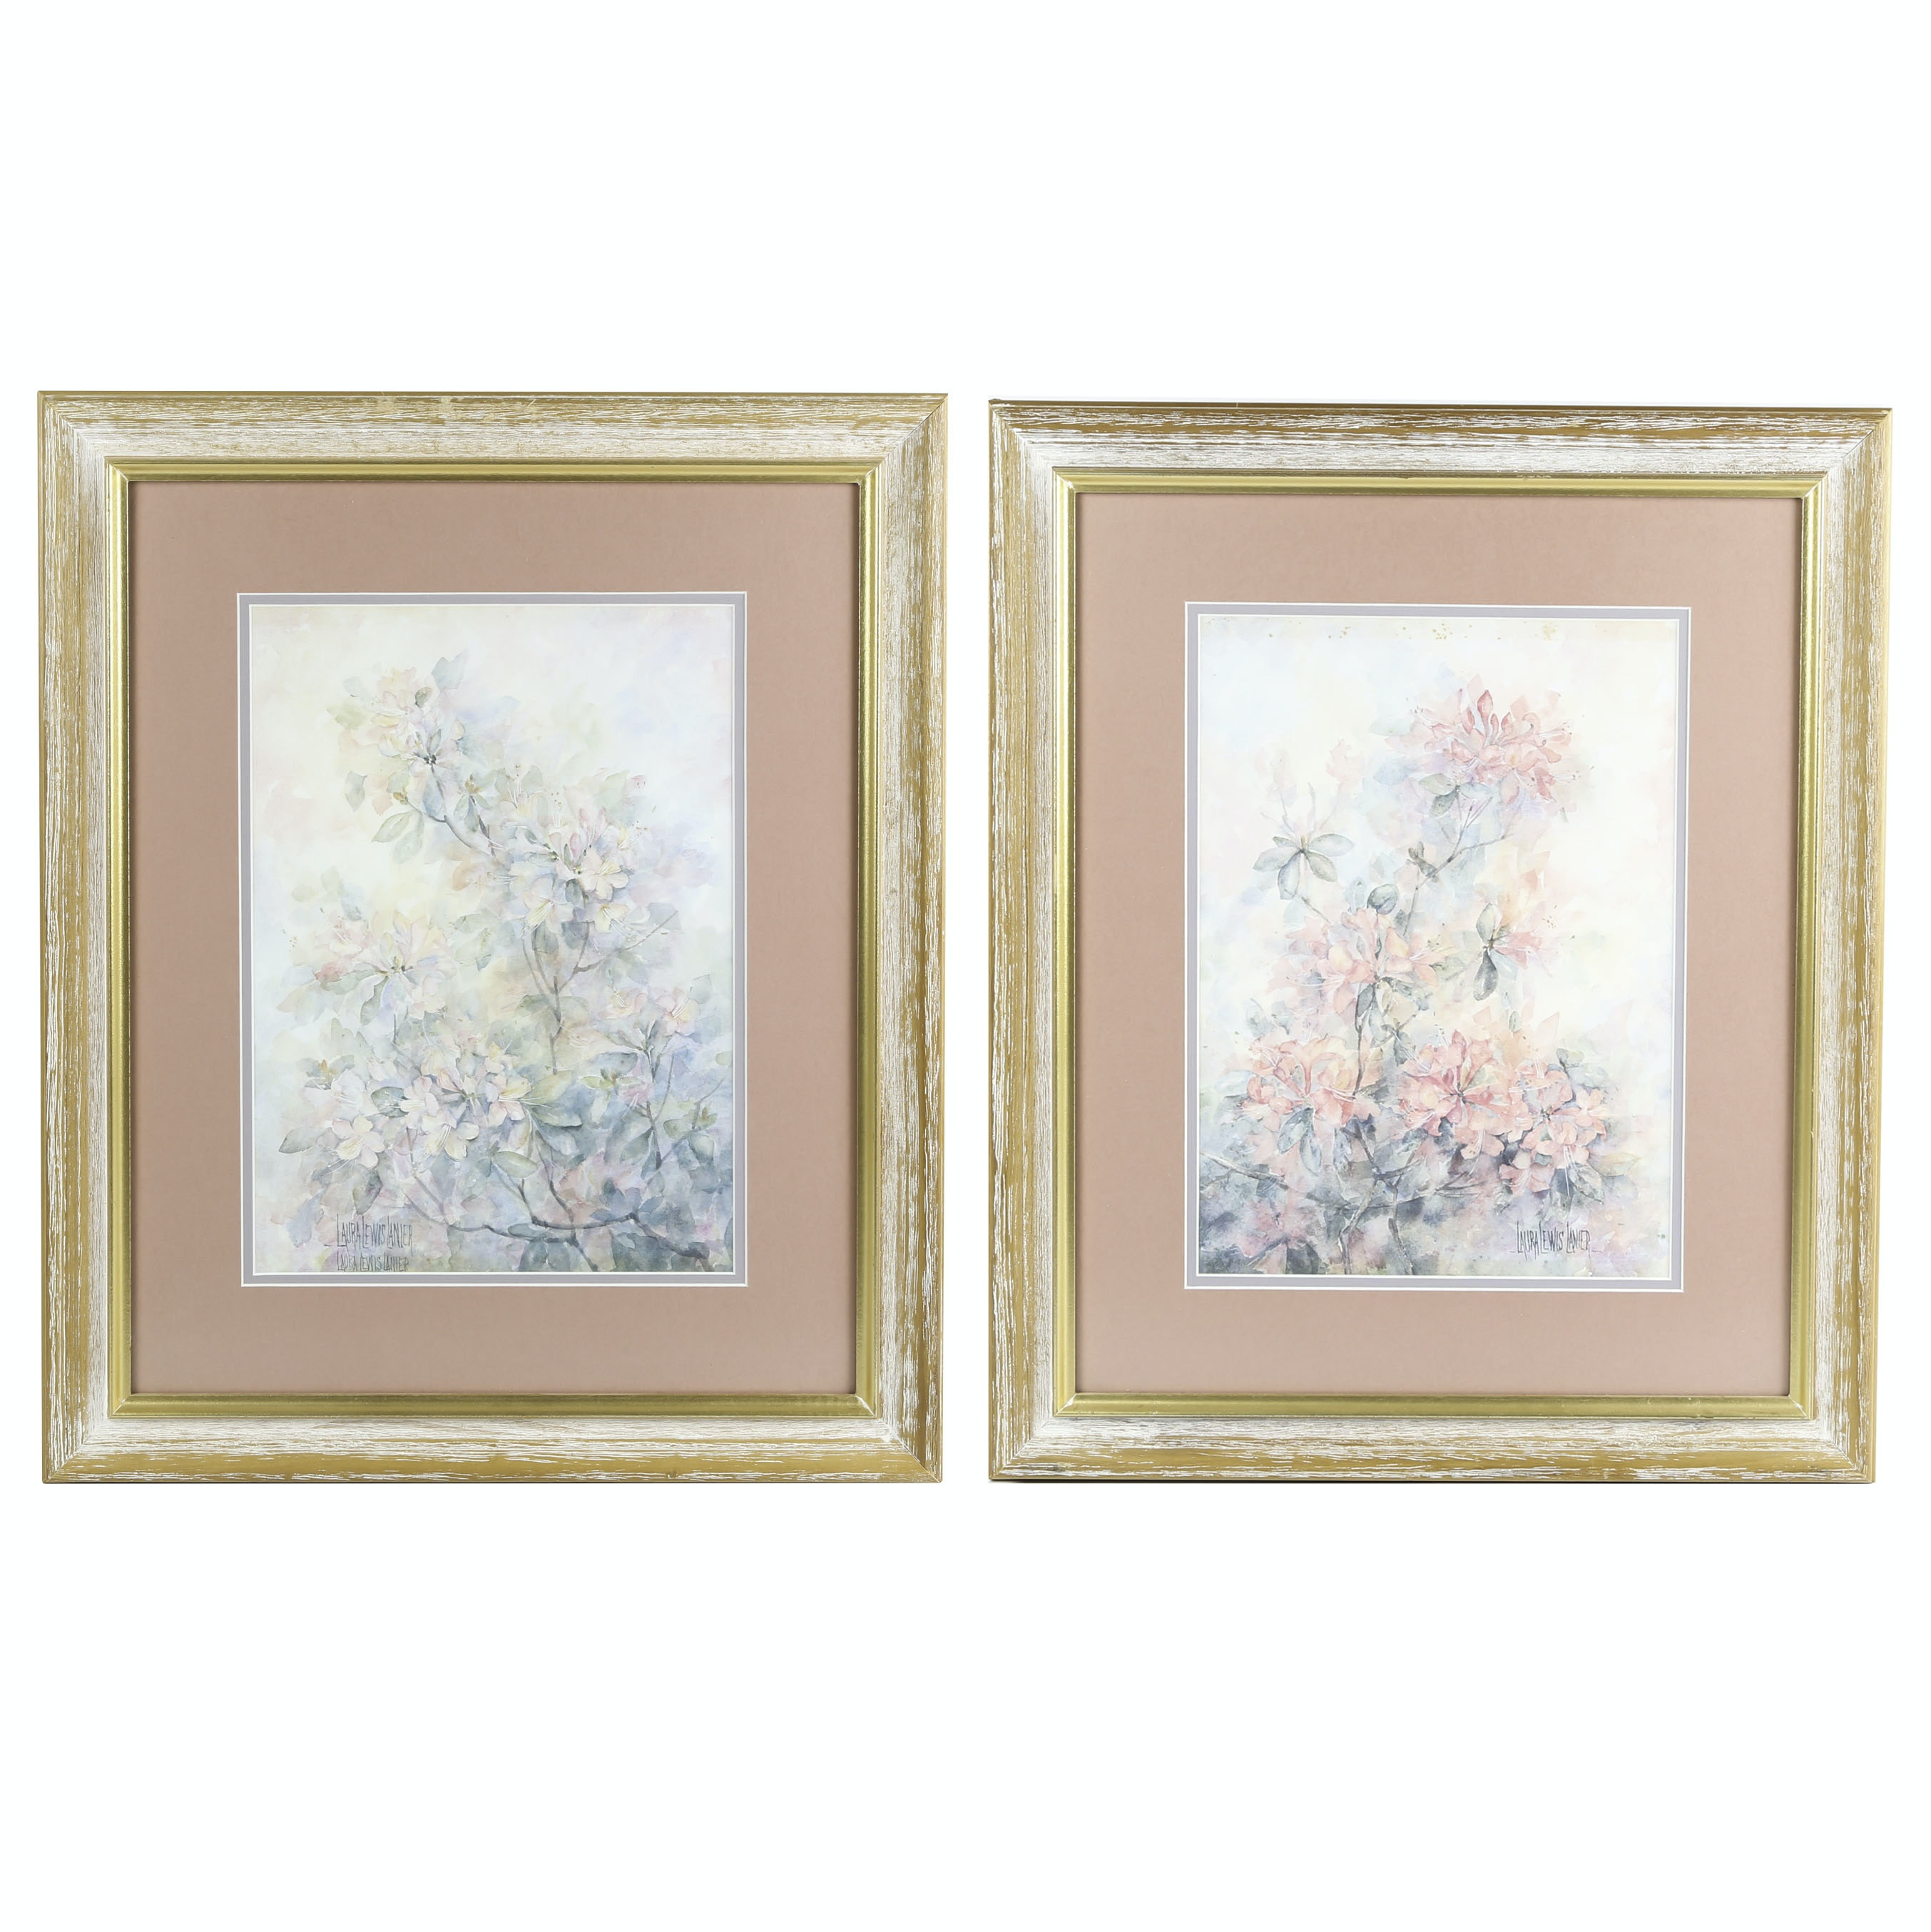 Two Offset Lithographs After Laura Lewis Lanier